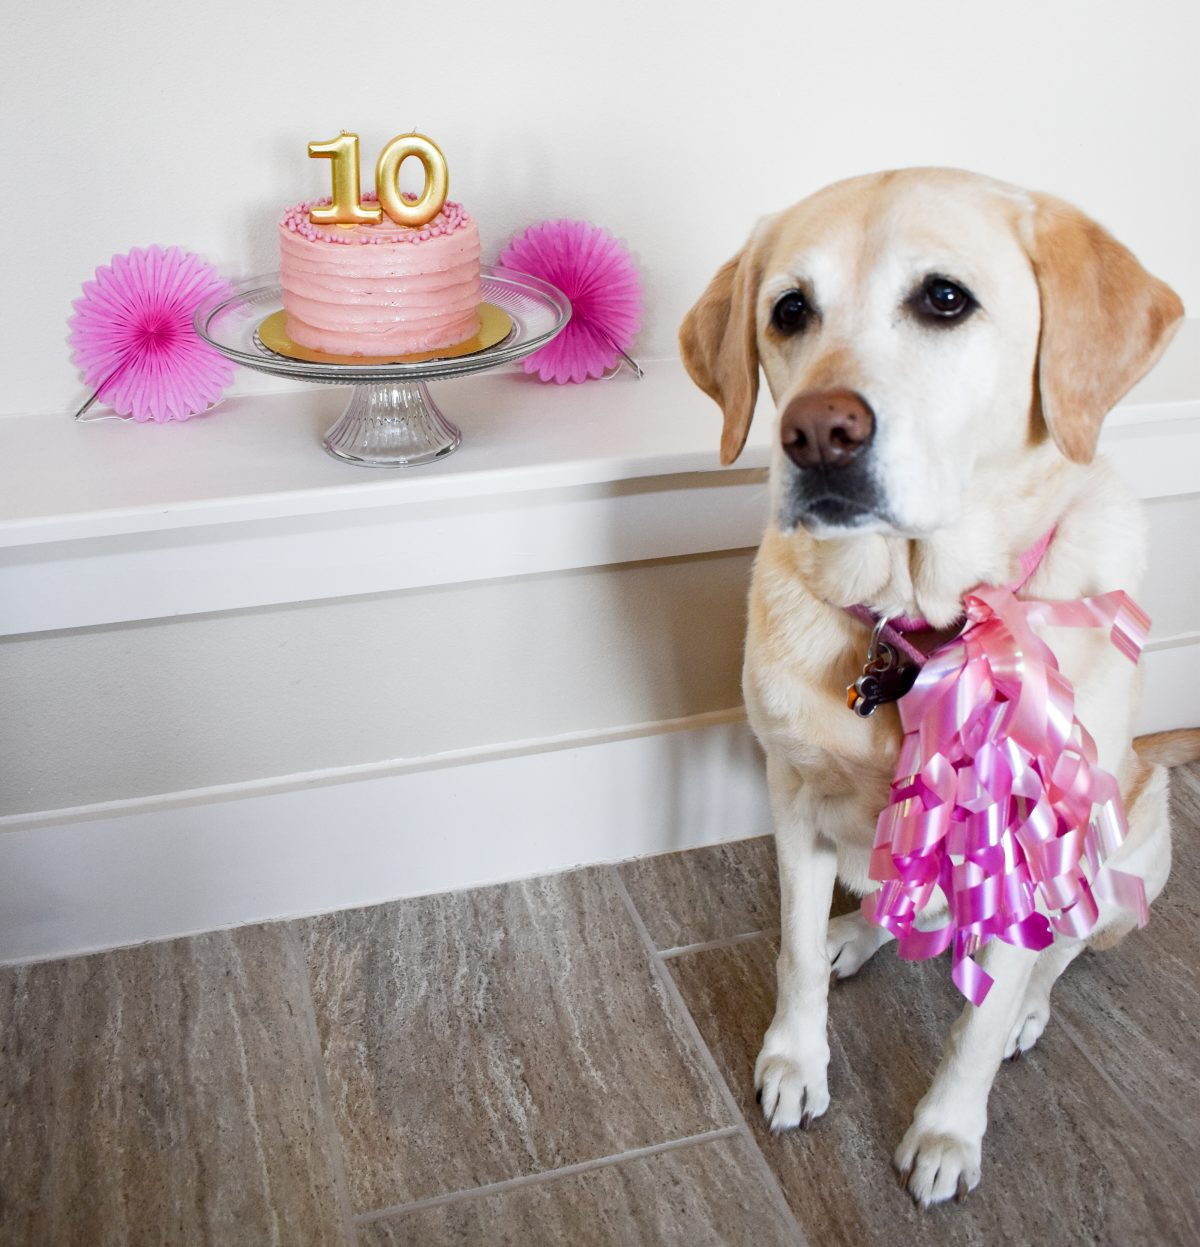 Yellow Labrador | 5 Reasons Why You Should Totally Throw a Birthday Party For Your Dog | Cathedrals and Cafes Blog